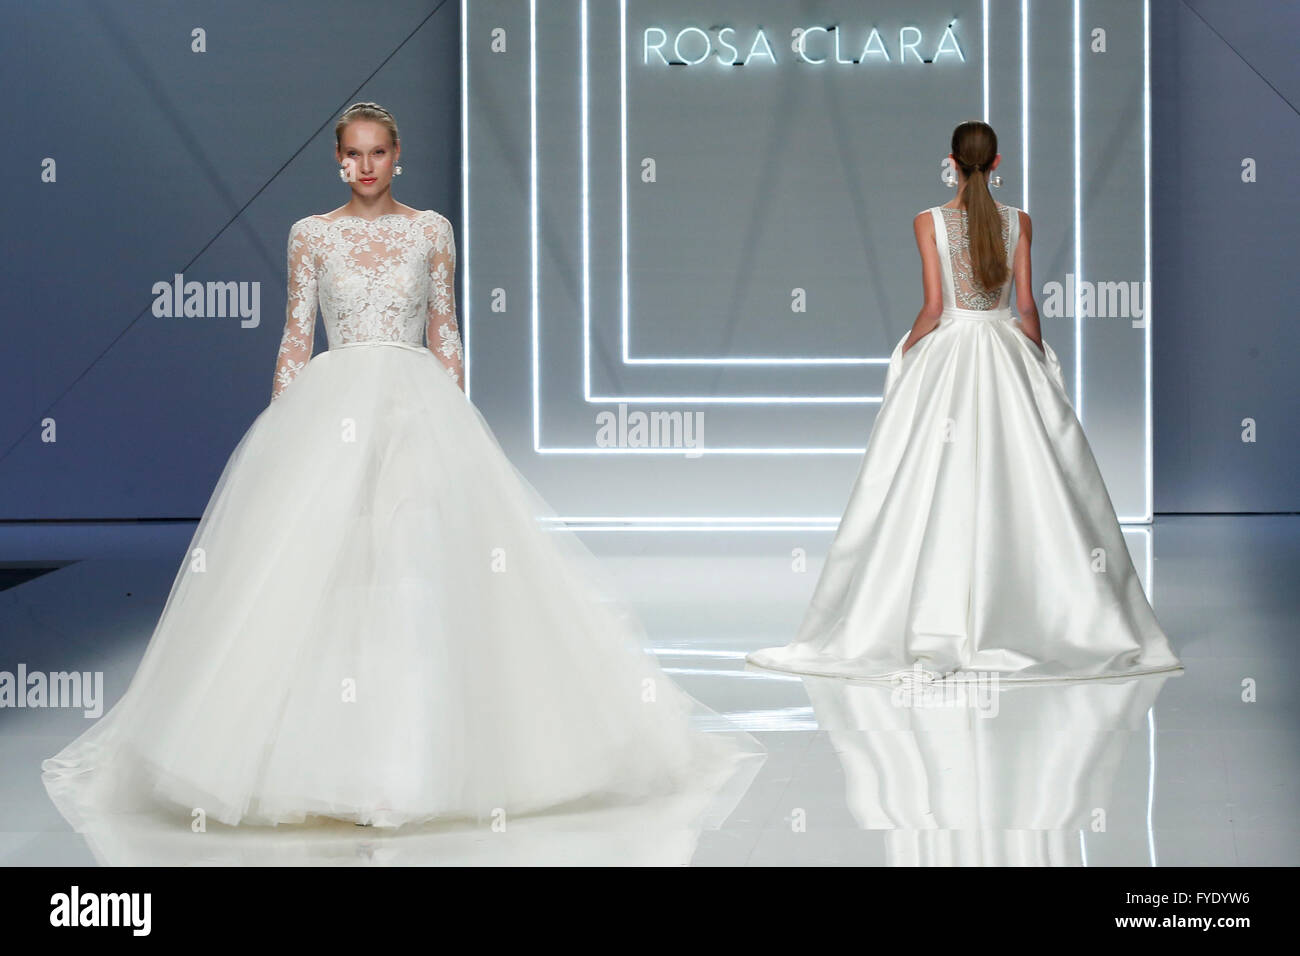 Fancy Rosa Clara Wedding Dresses Uk Ensign - Womens Dresses & Gowns ...